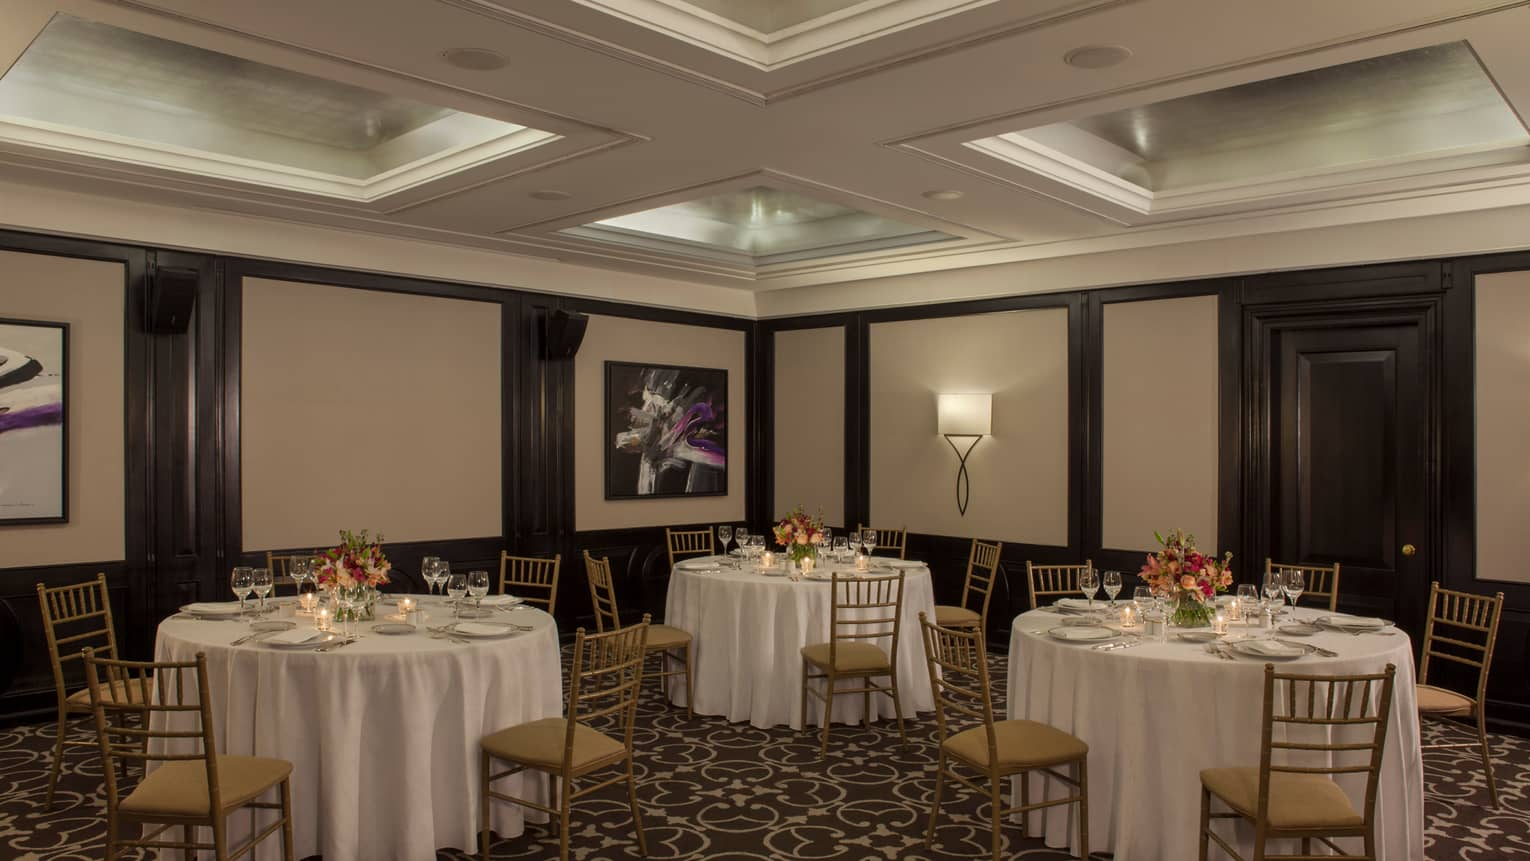 Small round banquet tables and chairs under recessed ceiling